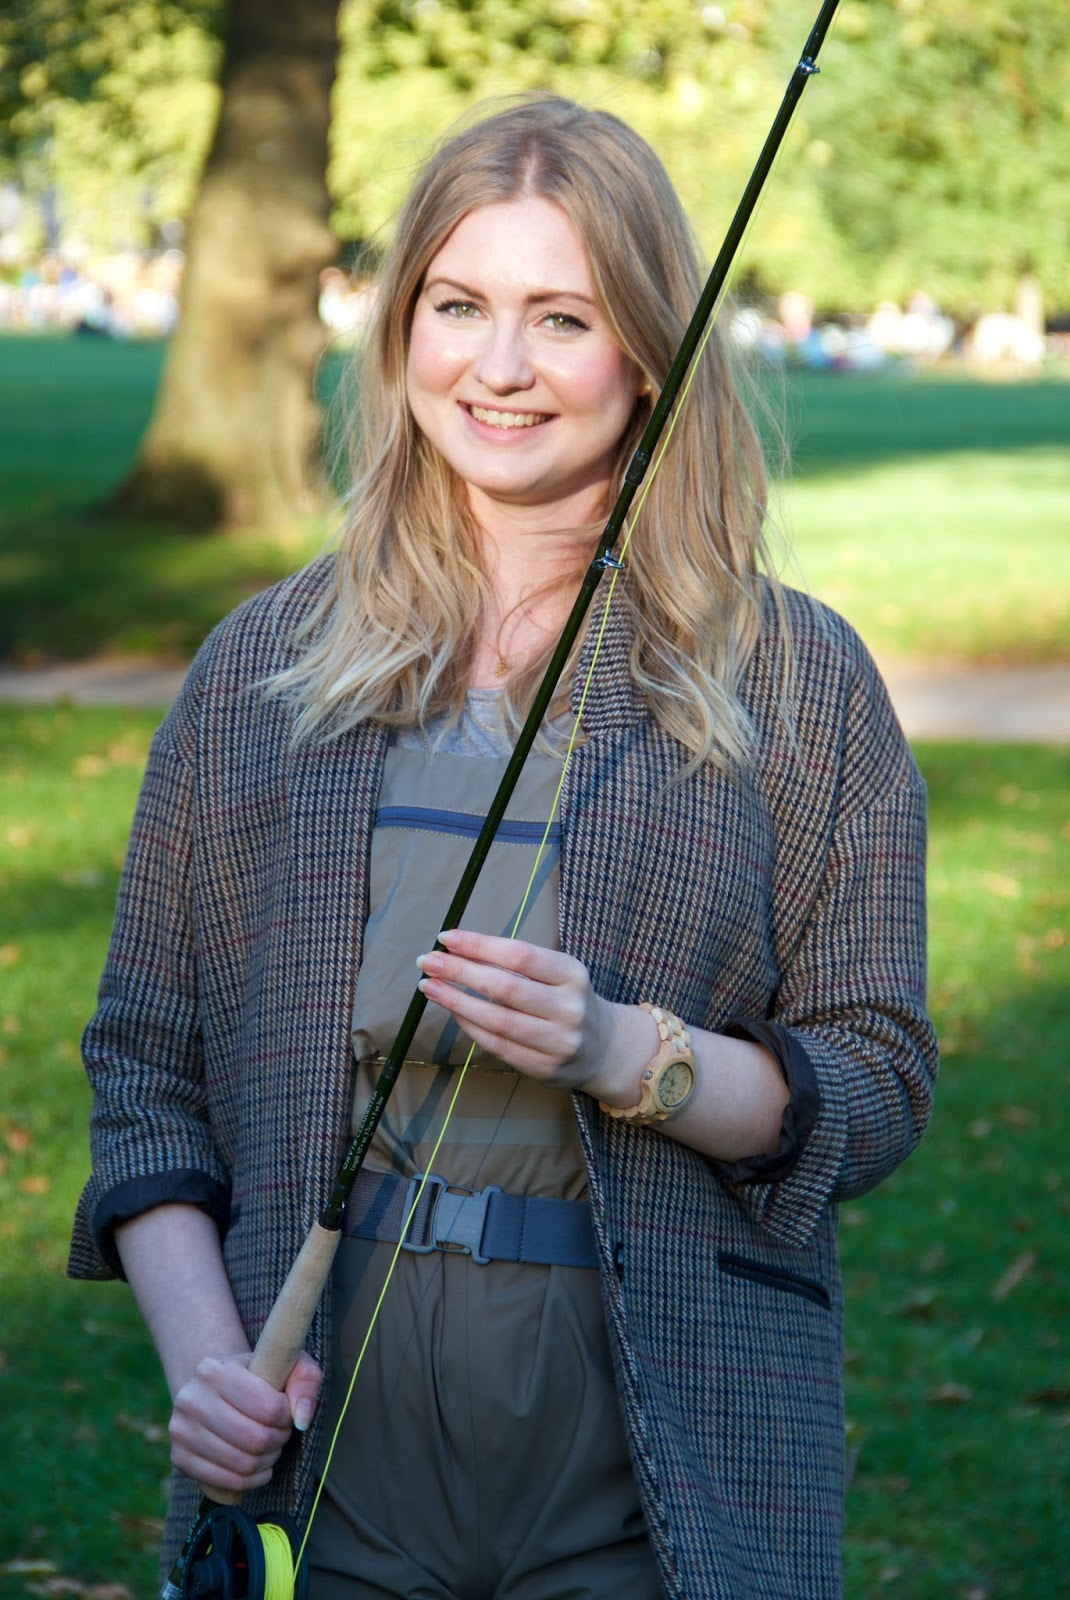 Fly fishing lesson with Orvis, FashionFake, lifestyle bloggers